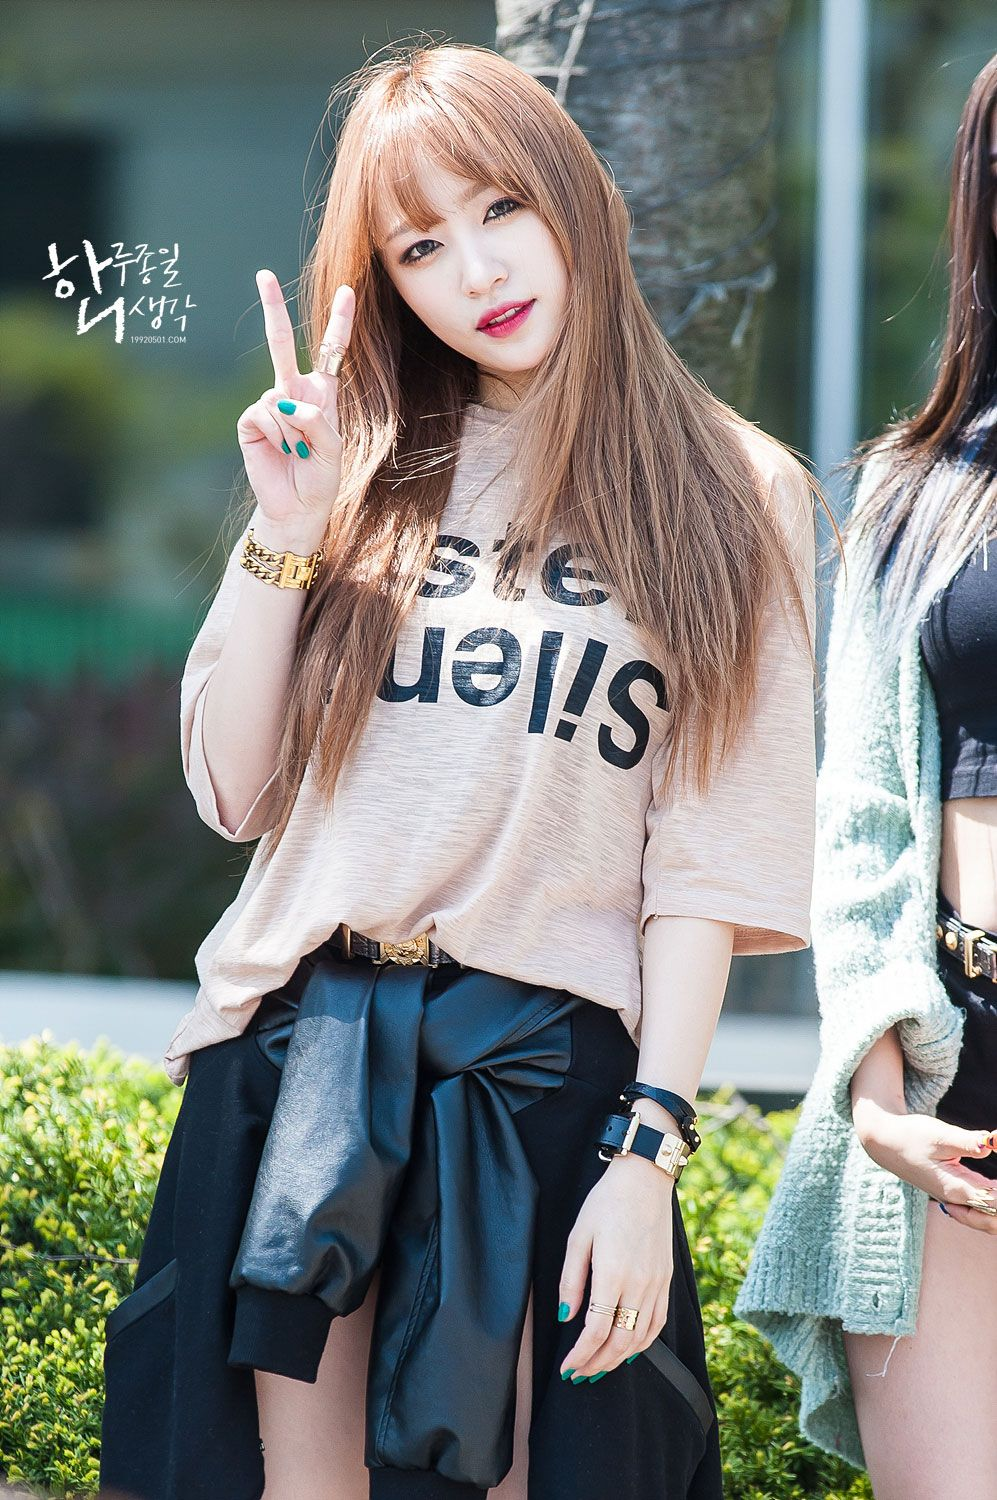 Ni nice korean girl hairstyles - Hani Of Korean Pop Group Exid At A Mini Fan Meeting In April 2015 To Promote Ah Yeah The Girls Second Mini Album